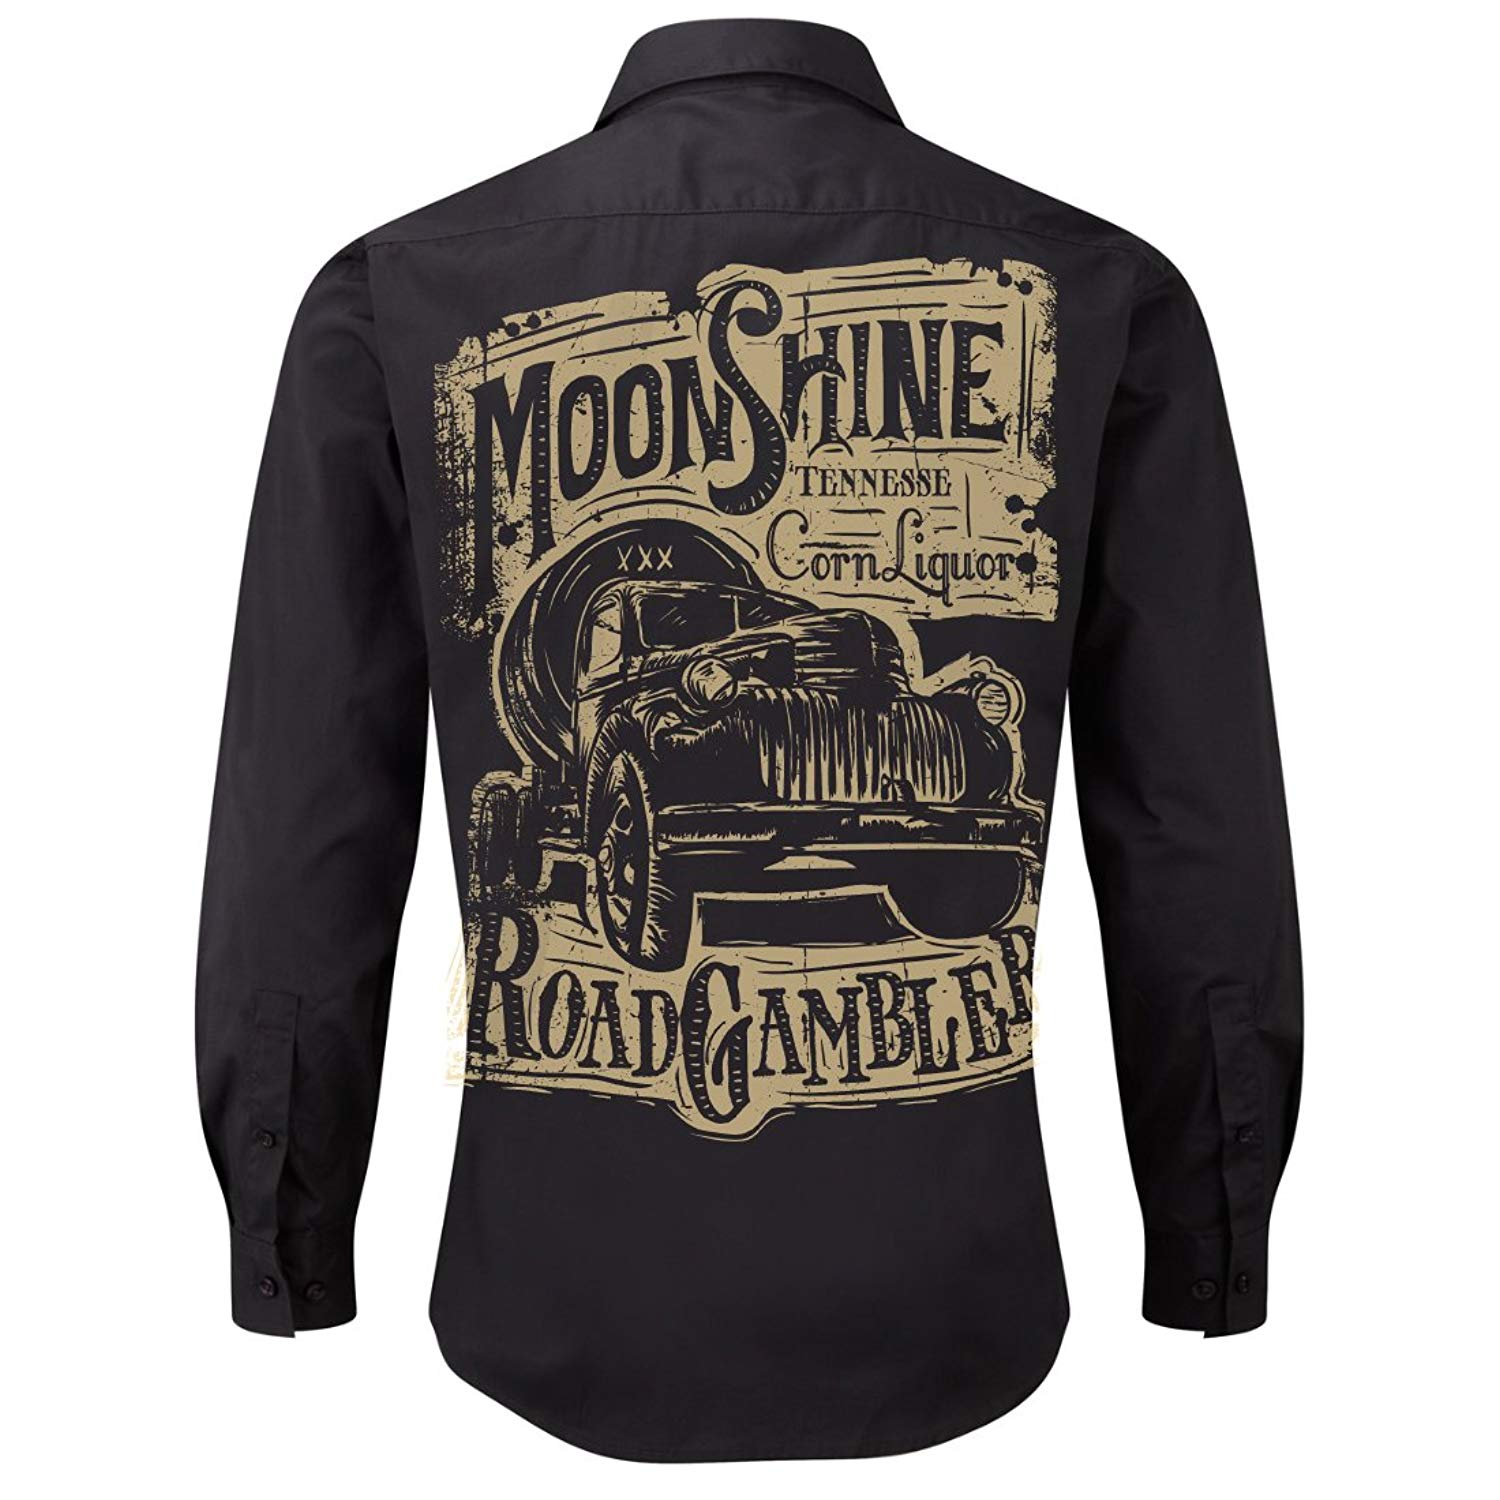 ROAD RODEO Rockabilly,Mechanic Work Shirt, Longsleeve, Rock'n'Roll, Pick Up, Booze, Moonshine